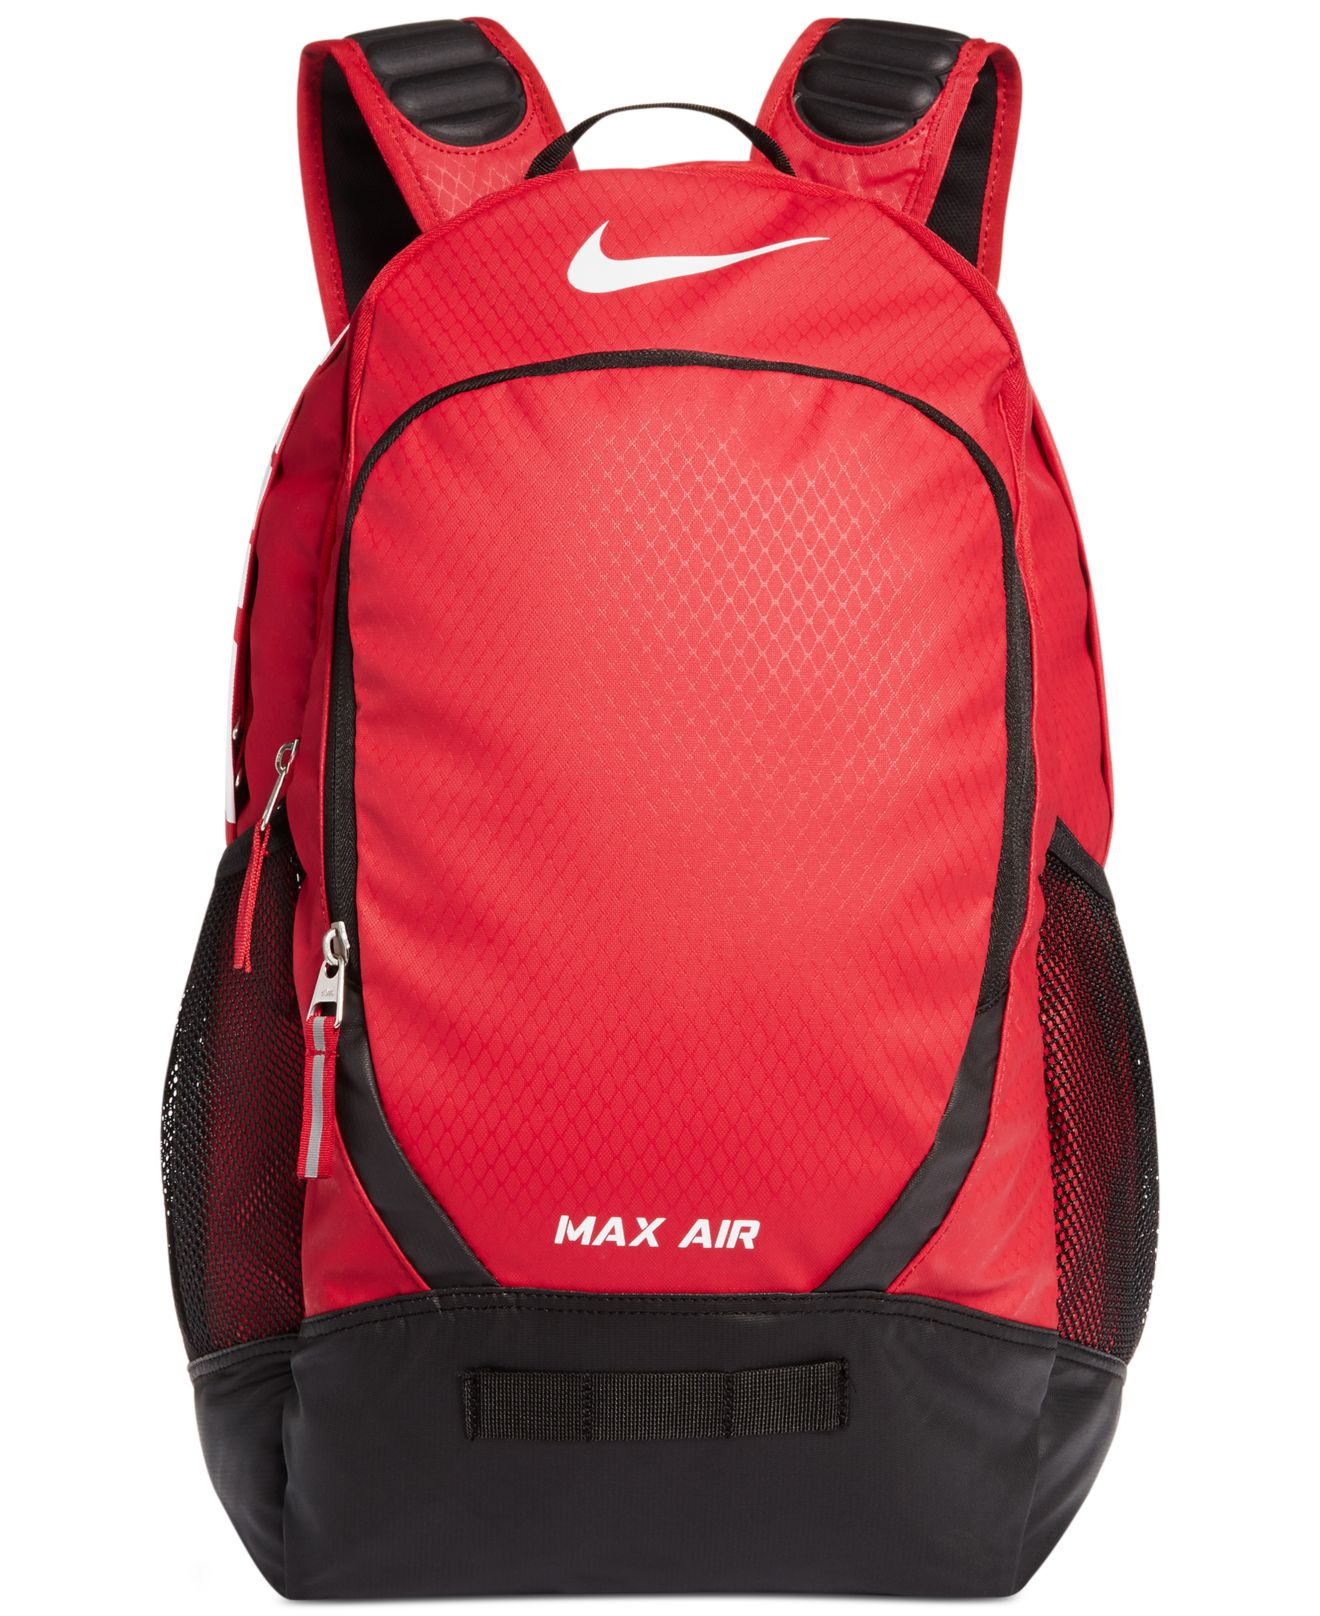 7c9a4120cd73 Lyst - Nike Max Air Team Training Large Backpack in Red for Men